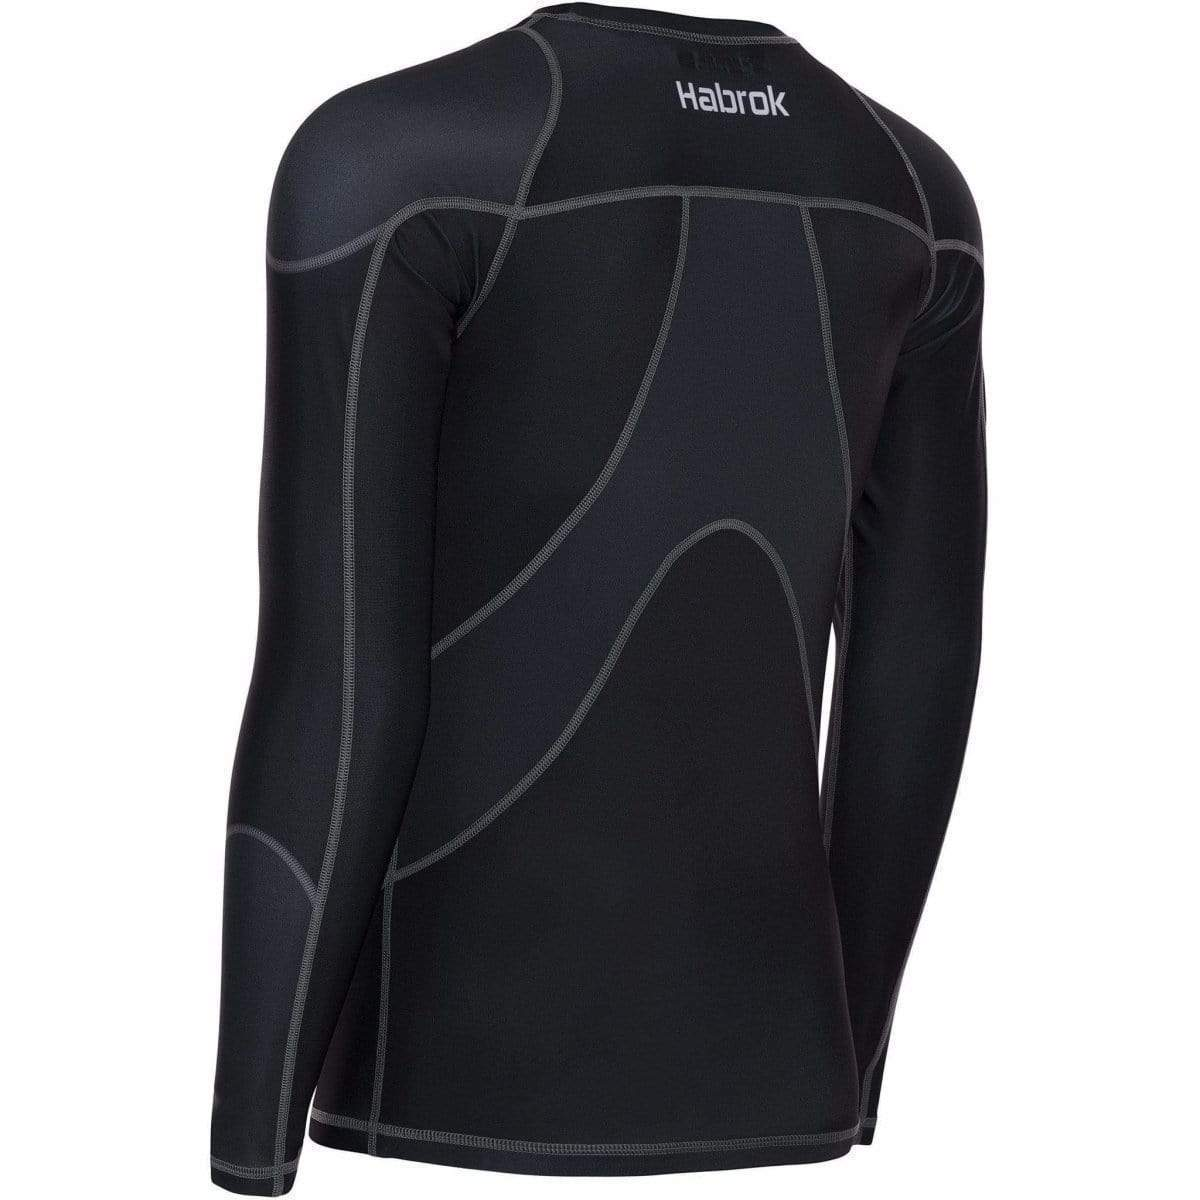 Habrok Rash Guard Pugnator | Rash Guard | Men Pugnator | Rash Guard | Habrok